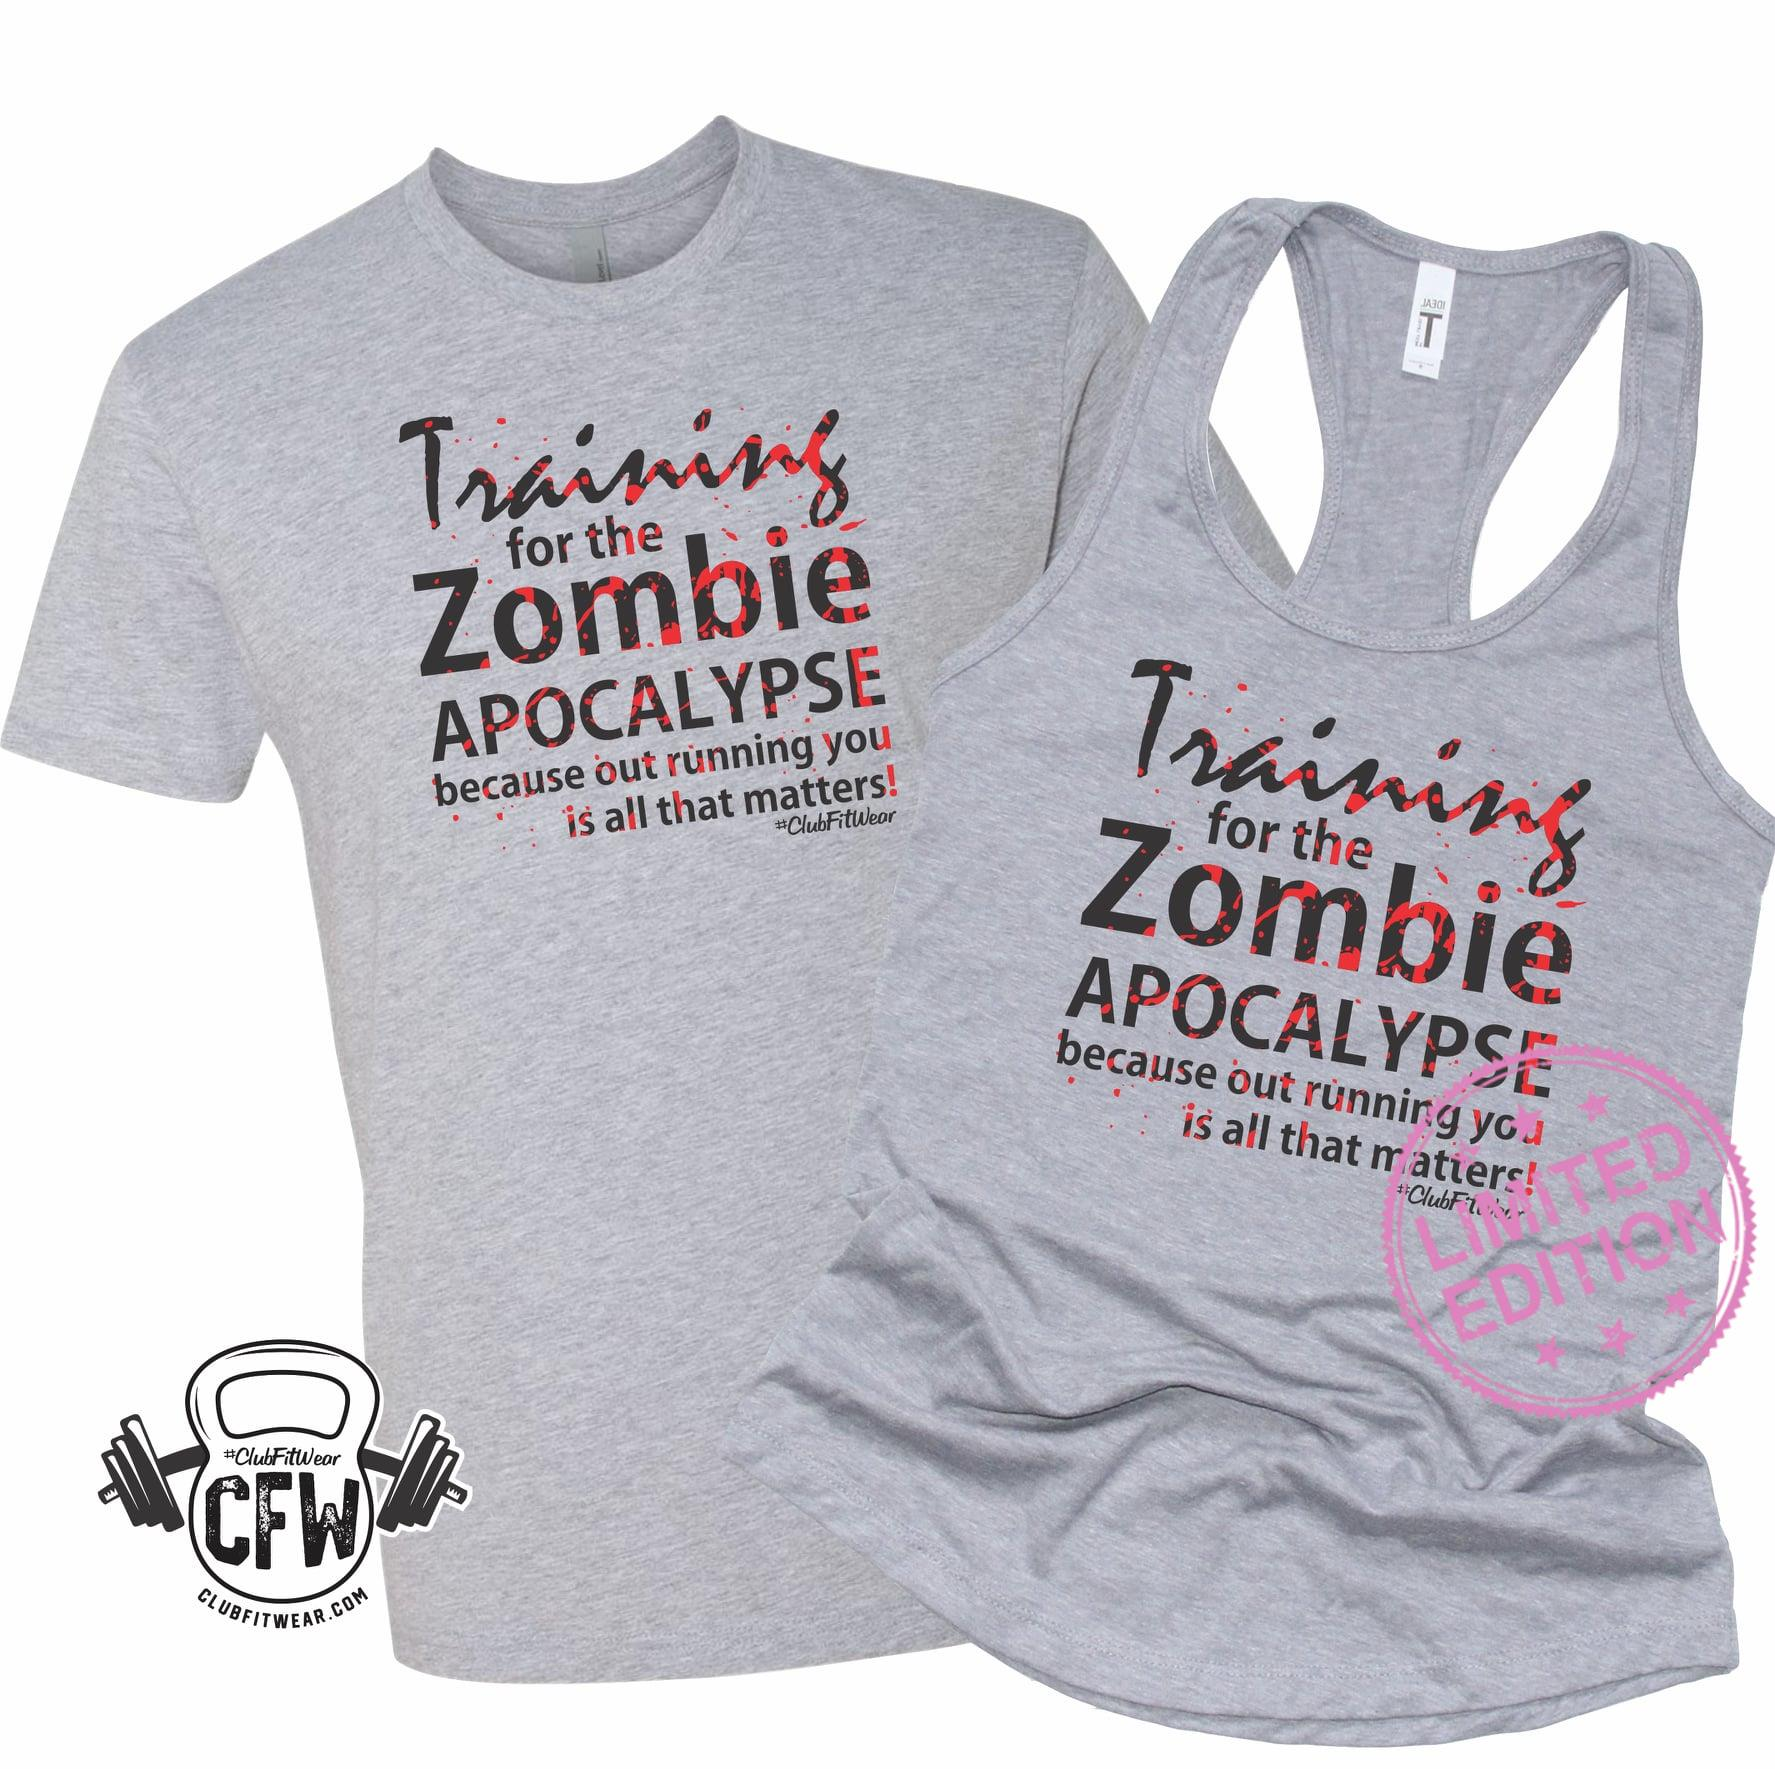 Training for the zombie apocalypse because out running you is all that matters shirt